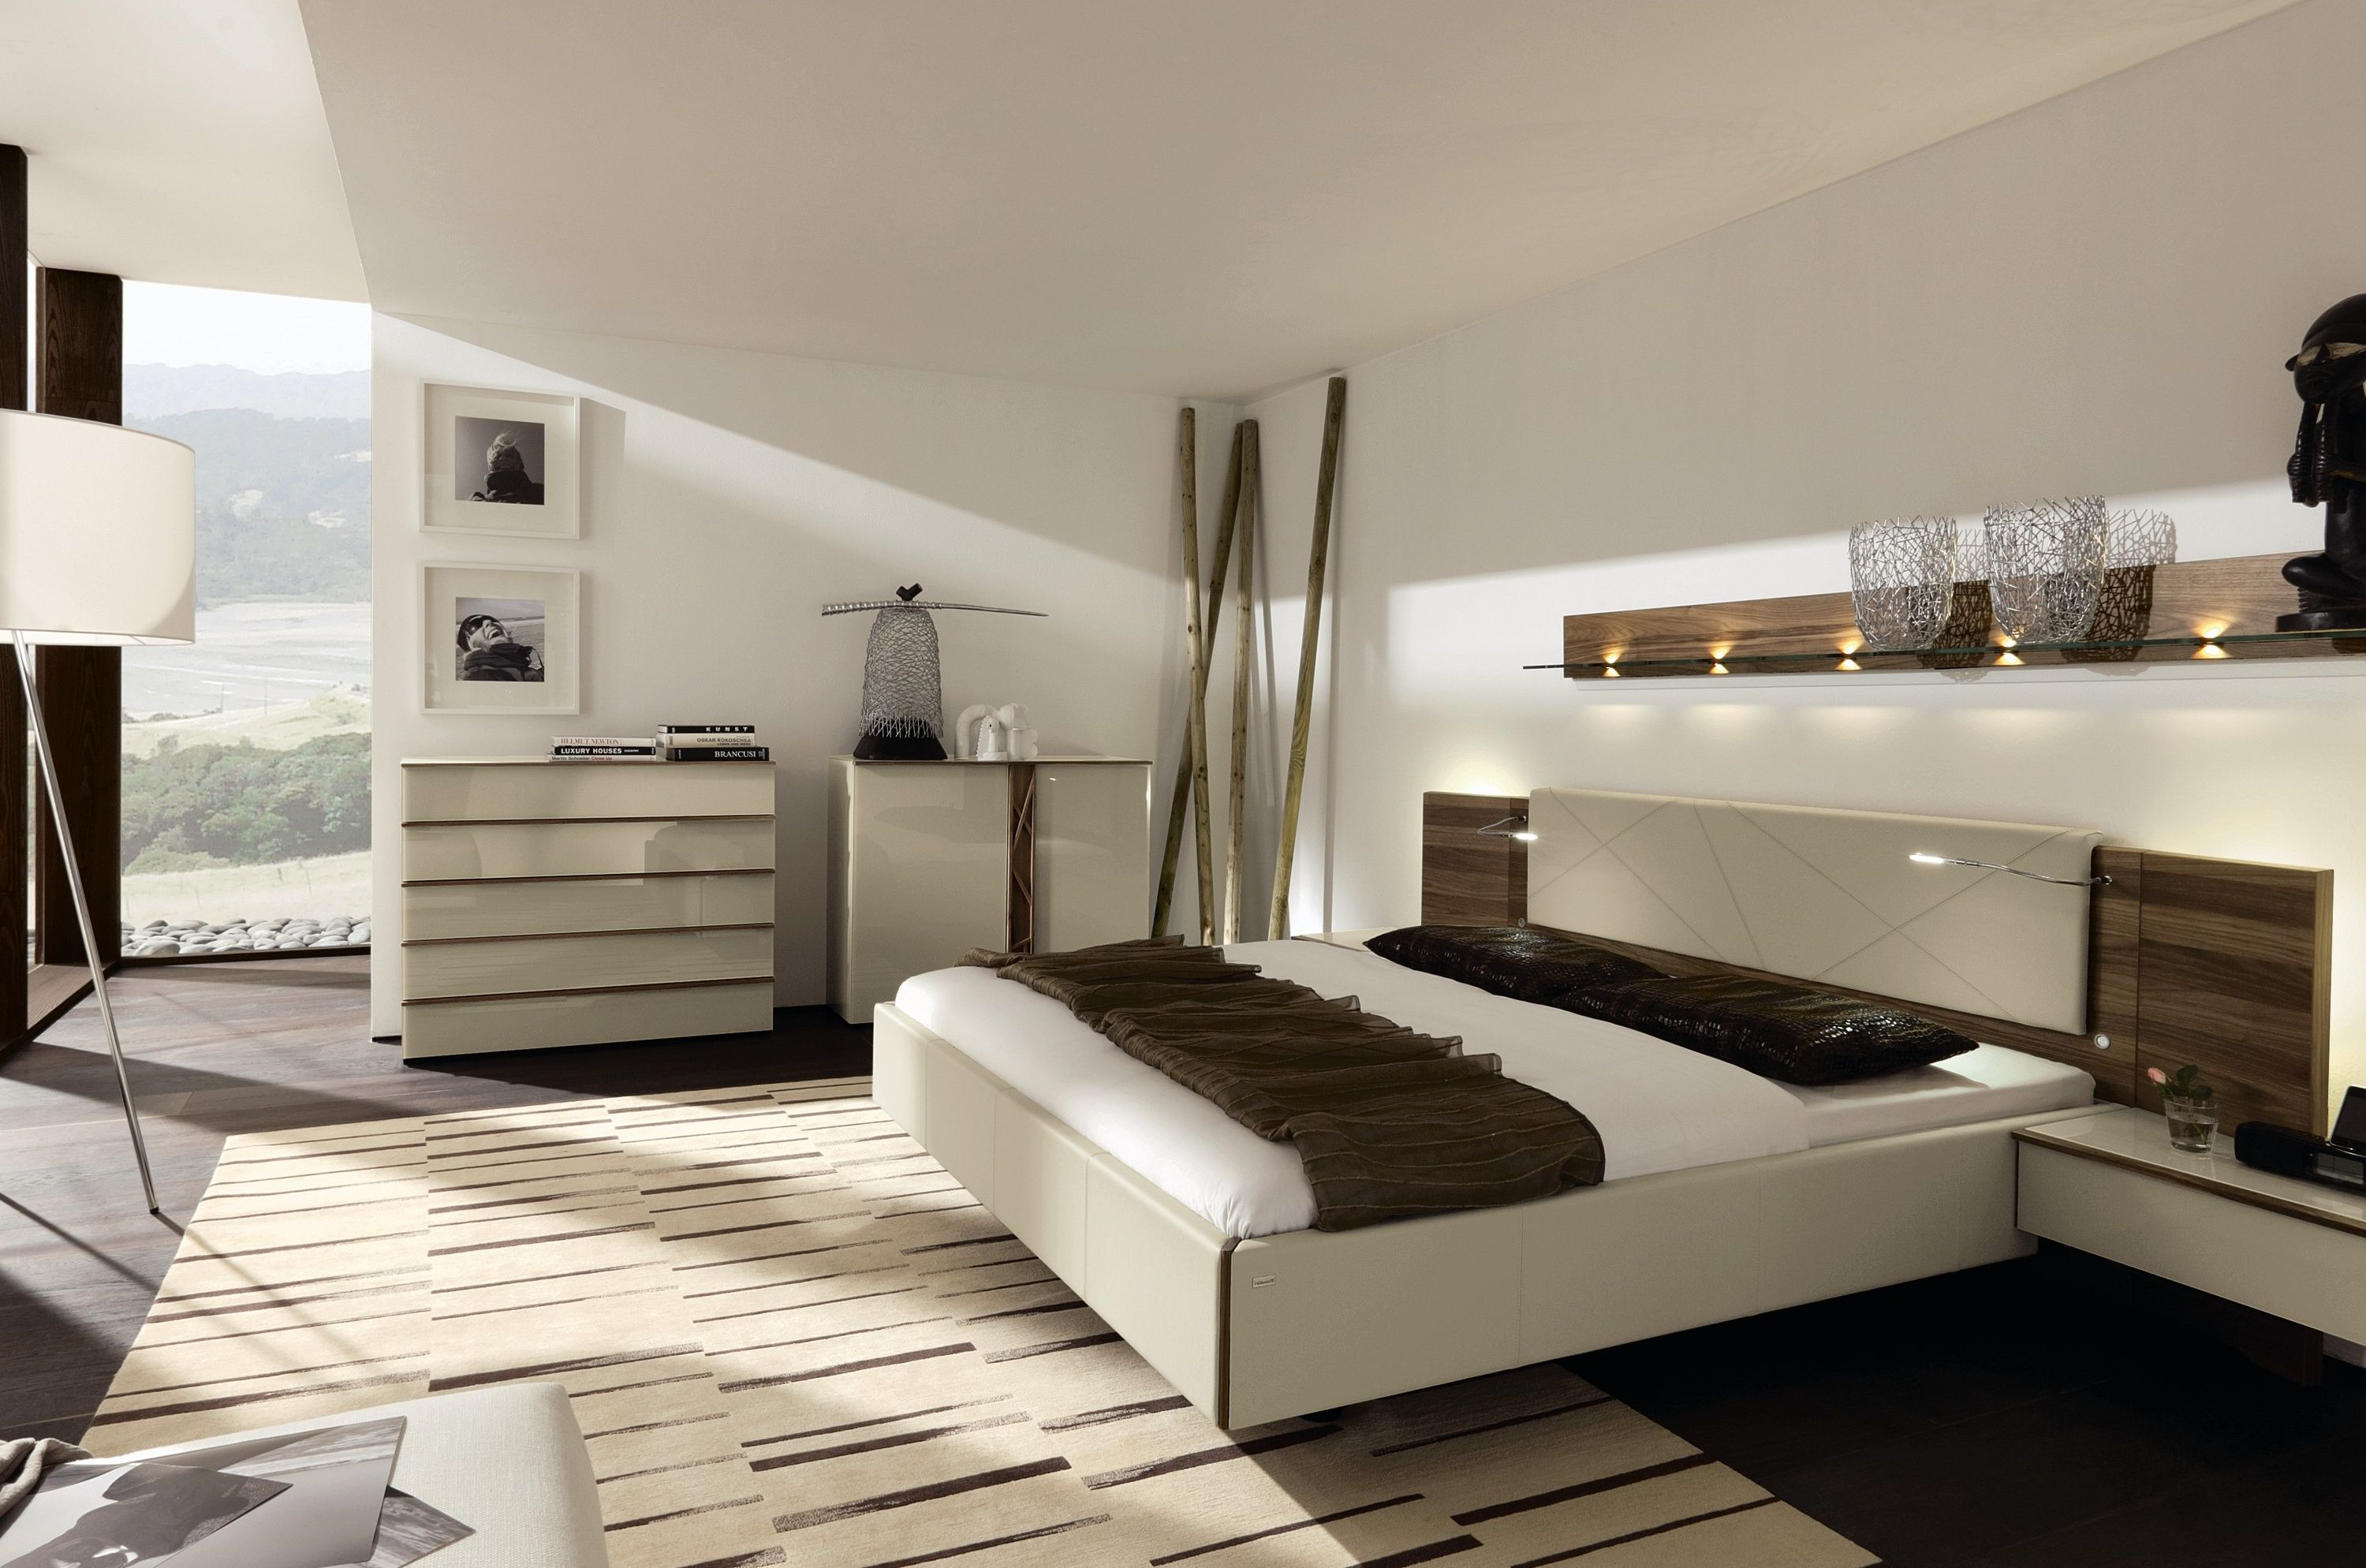 huelsta-moebel-hulsta-furniture-CUTARO-Schlafzimmer-sleeping ...